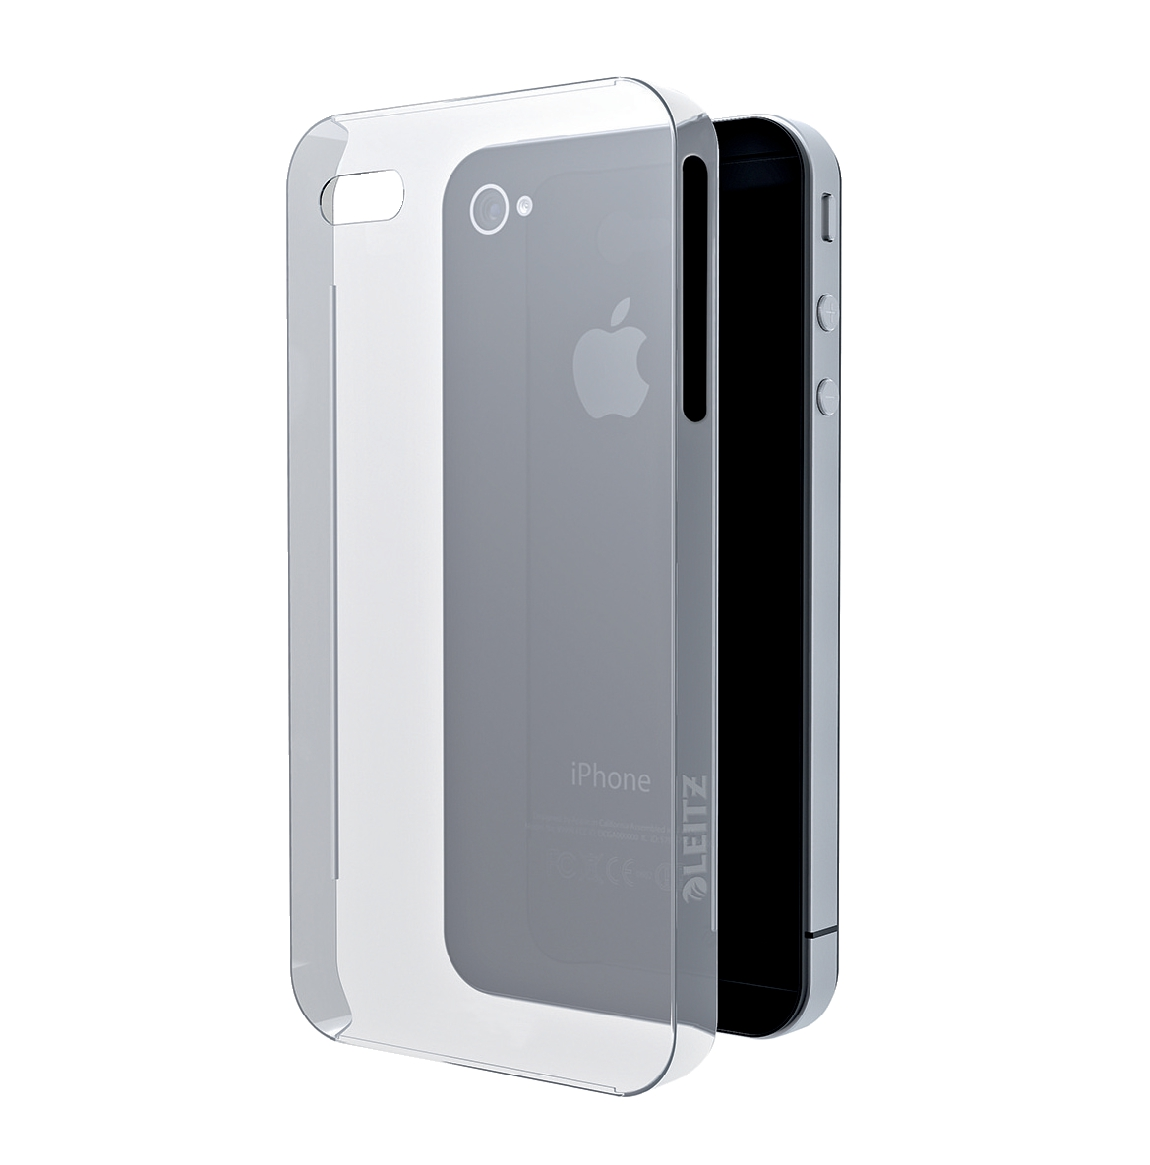 Image for Leitz Complete Case Transparent Iphone